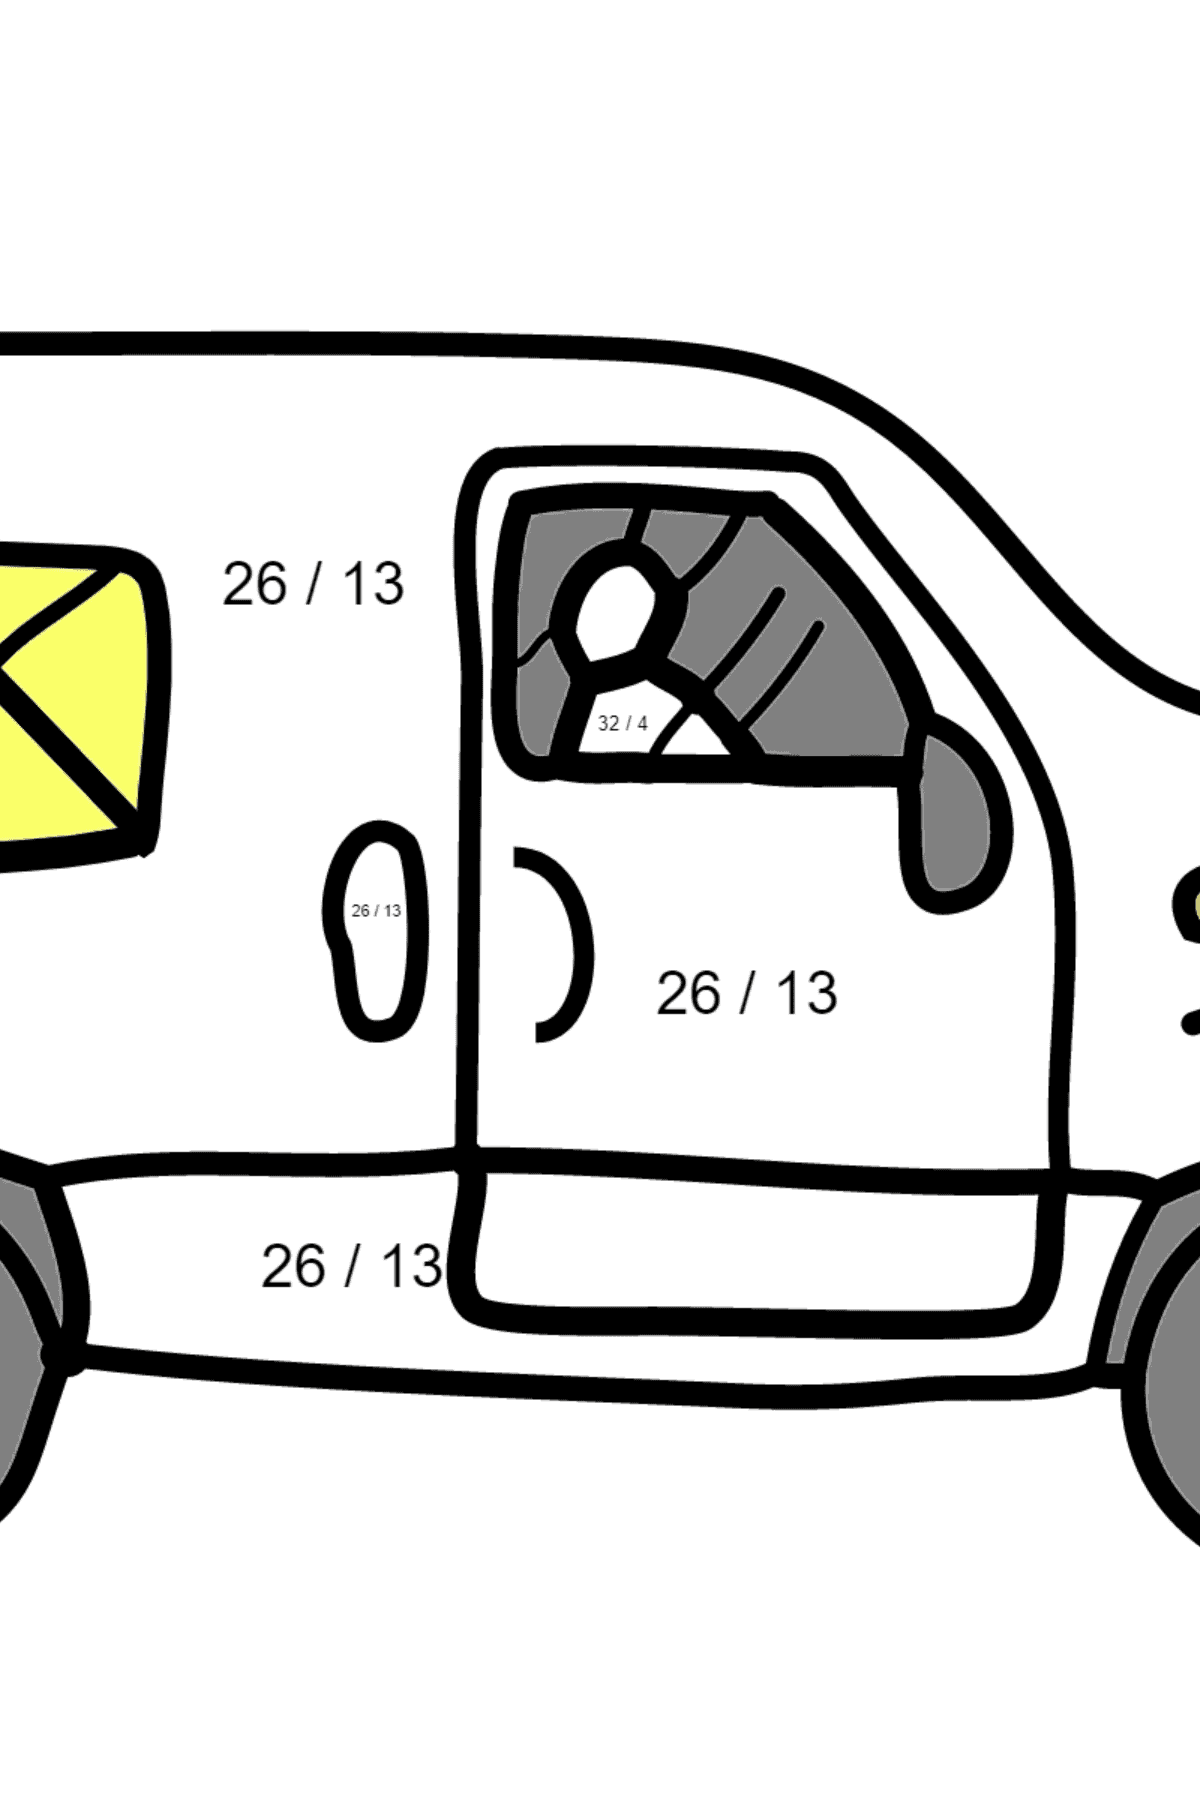 Coloring Page - A Car is Carrying Mail - Math Coloring - Division for Kids